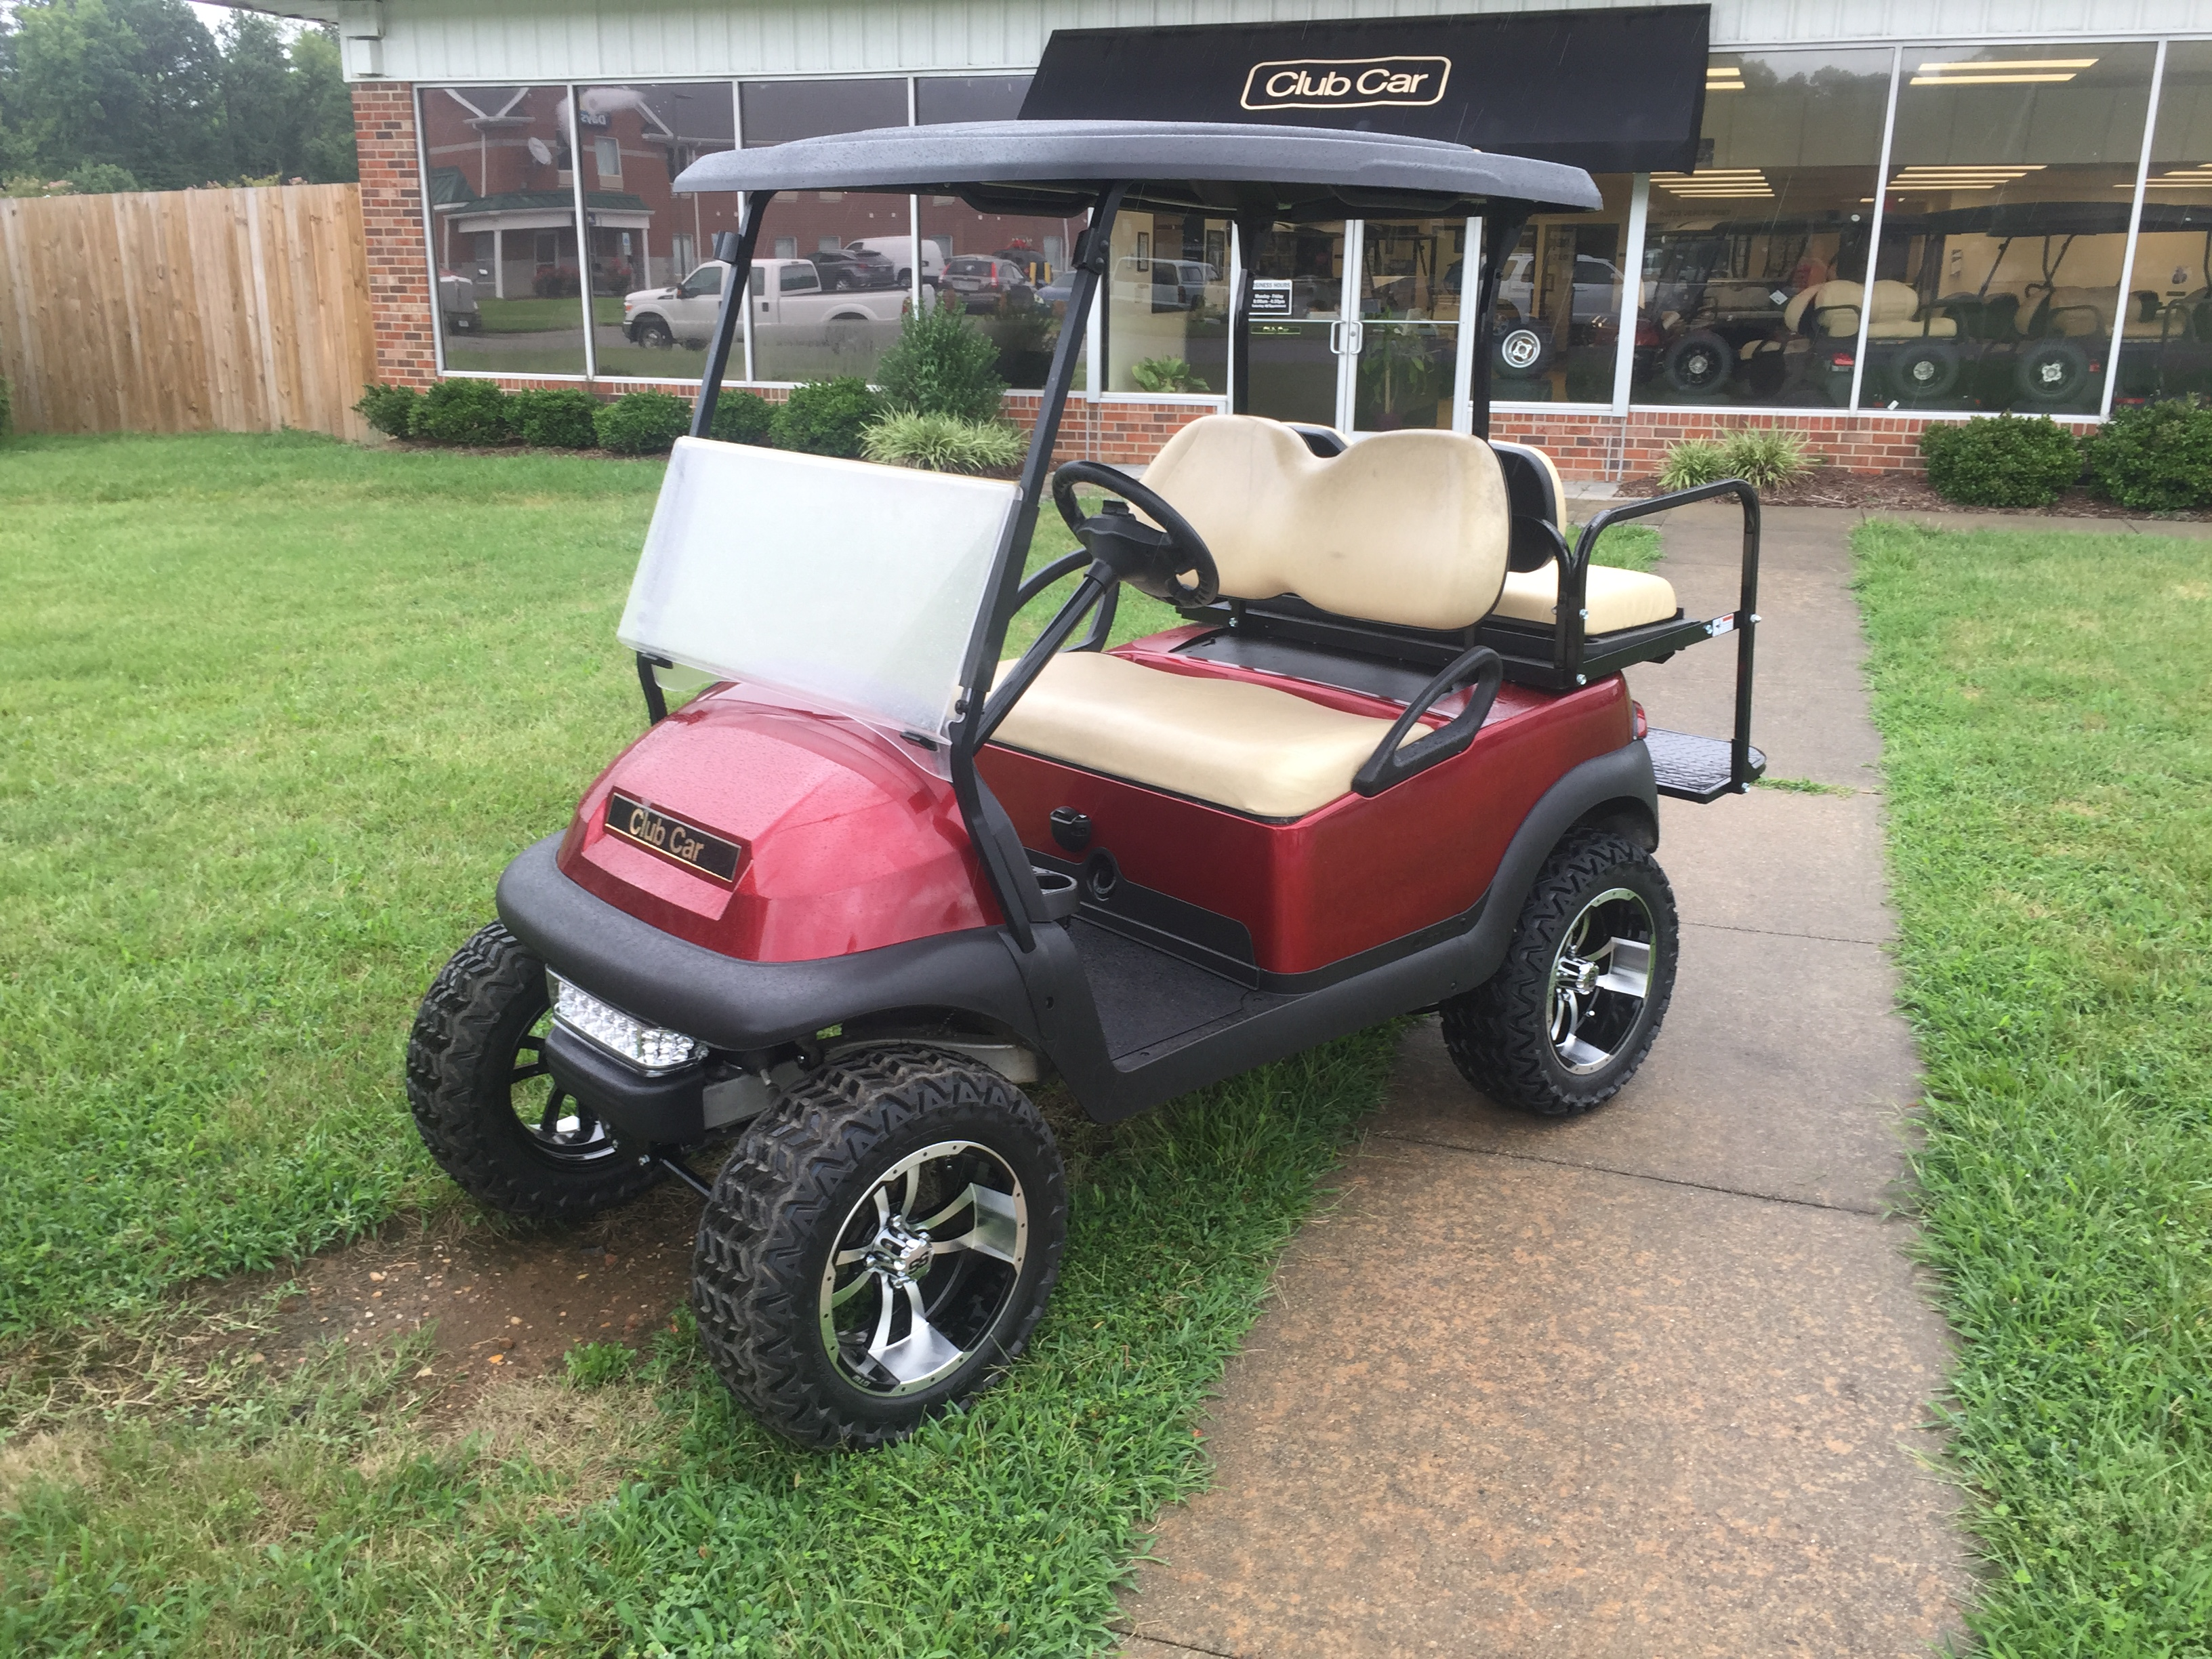 2014 Club Car Precedent Lifted Electric Golf Car Candy Apple Red